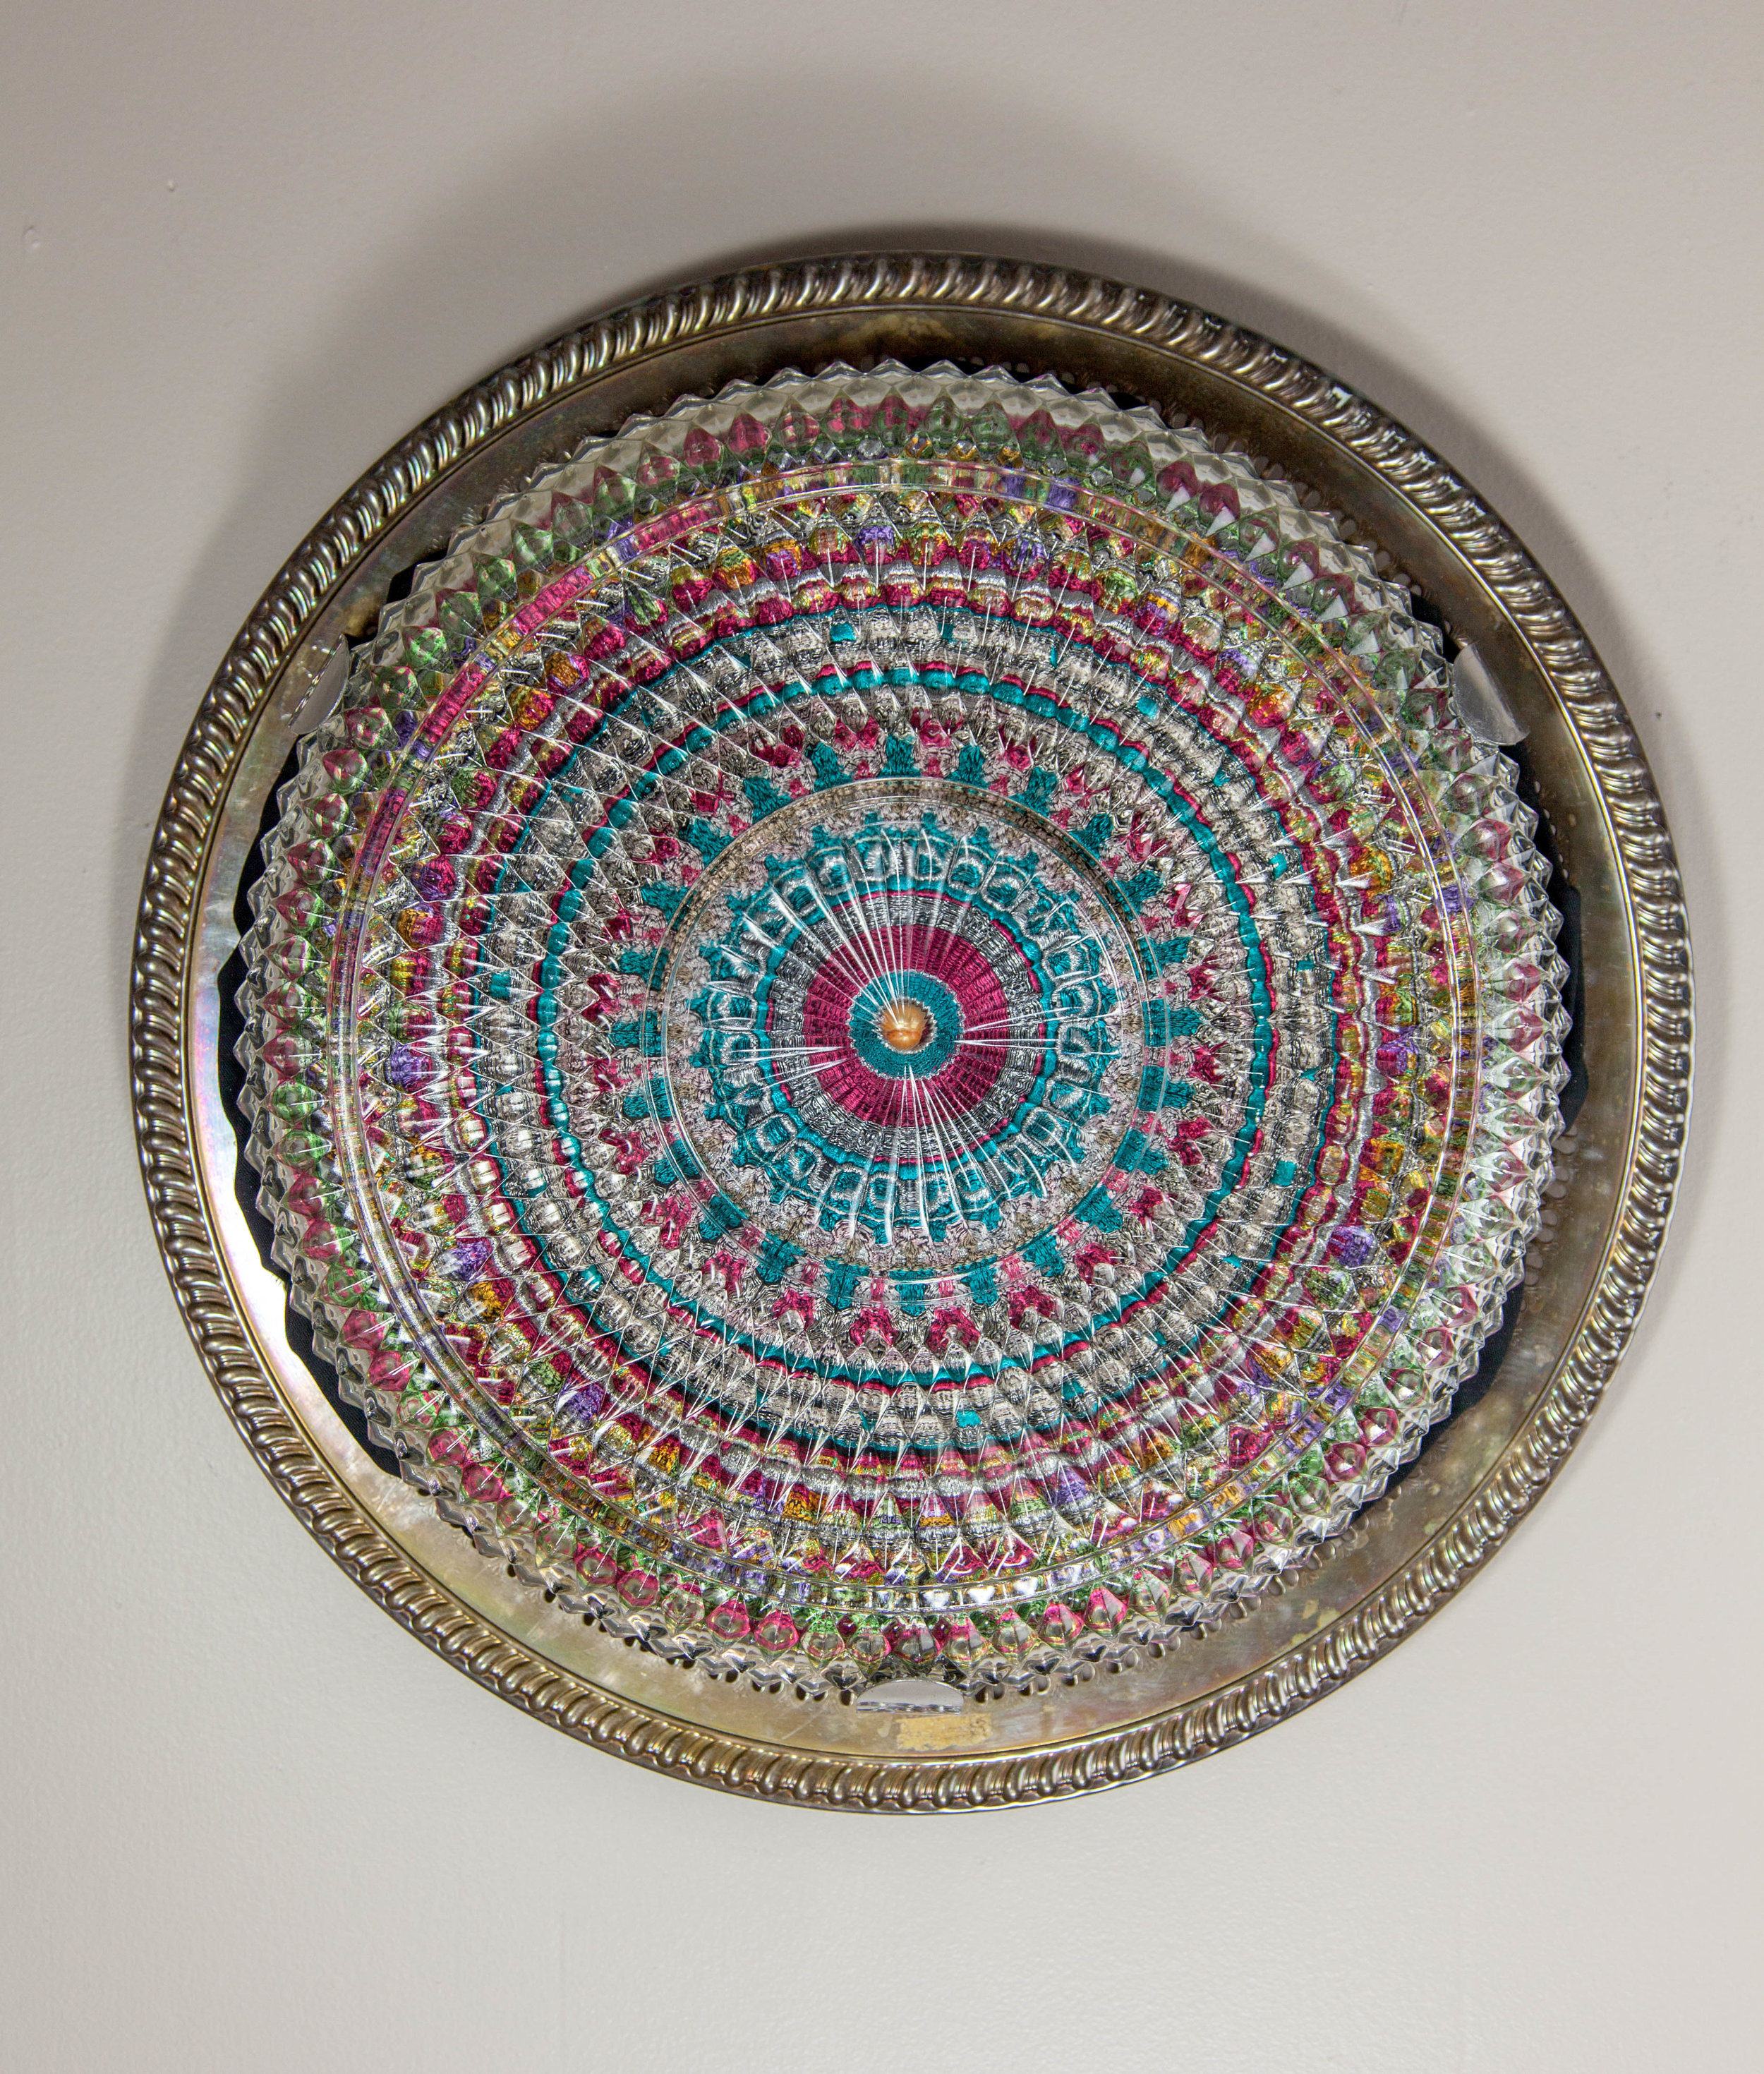 Good Looking, 2017 Domestic objects, fabric, machine embroidery, pearl bead, stainless steel, monofilament, 15 1/2 x 15 x 3